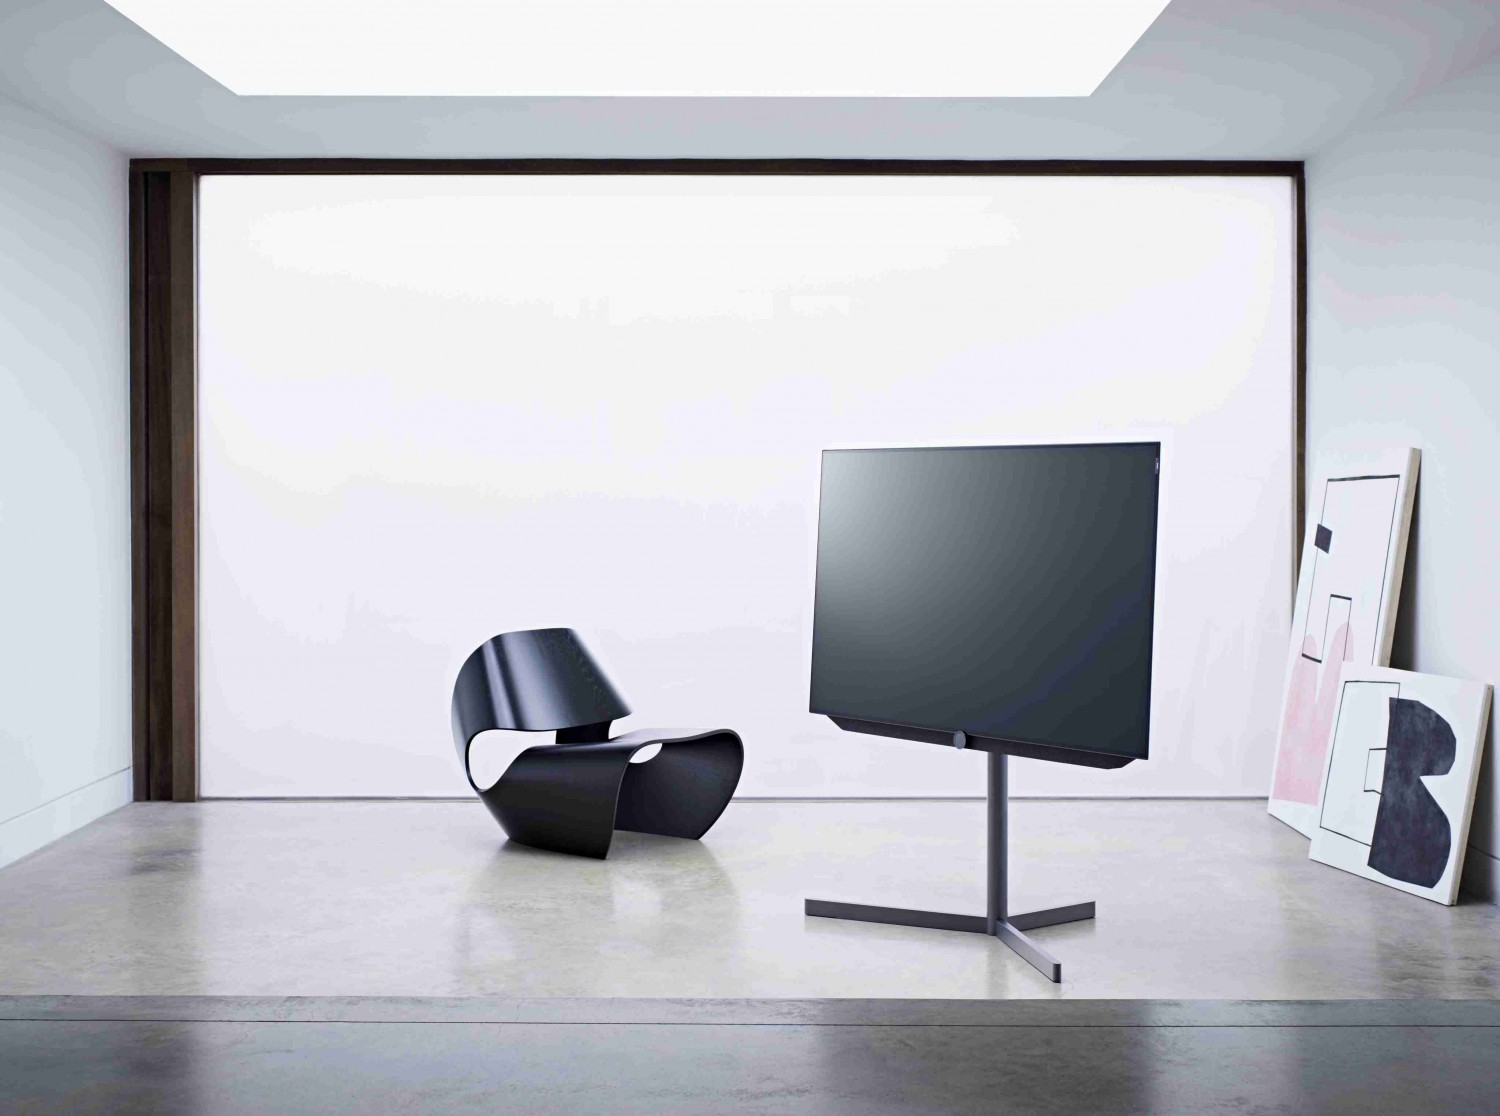 ifa 2016 oled fernseher von loewe und neue audio l sungen. Black Bedroom Furniture Sets. Home Design Ideas